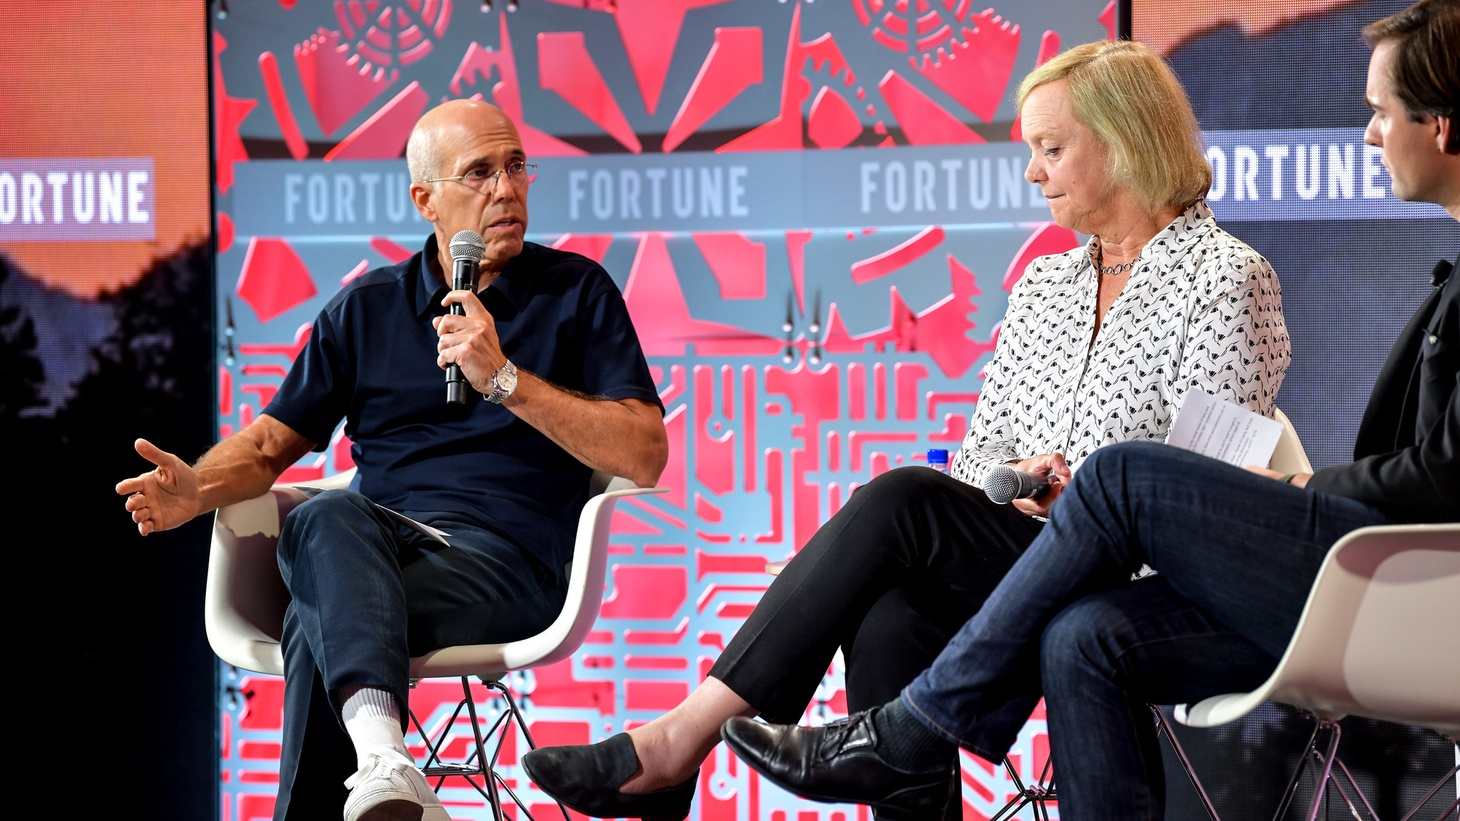 Jeffrey Katzenberg (left) and Meg Whitman (right) launched Quibi in April, but the company has experienced public troubles since then.